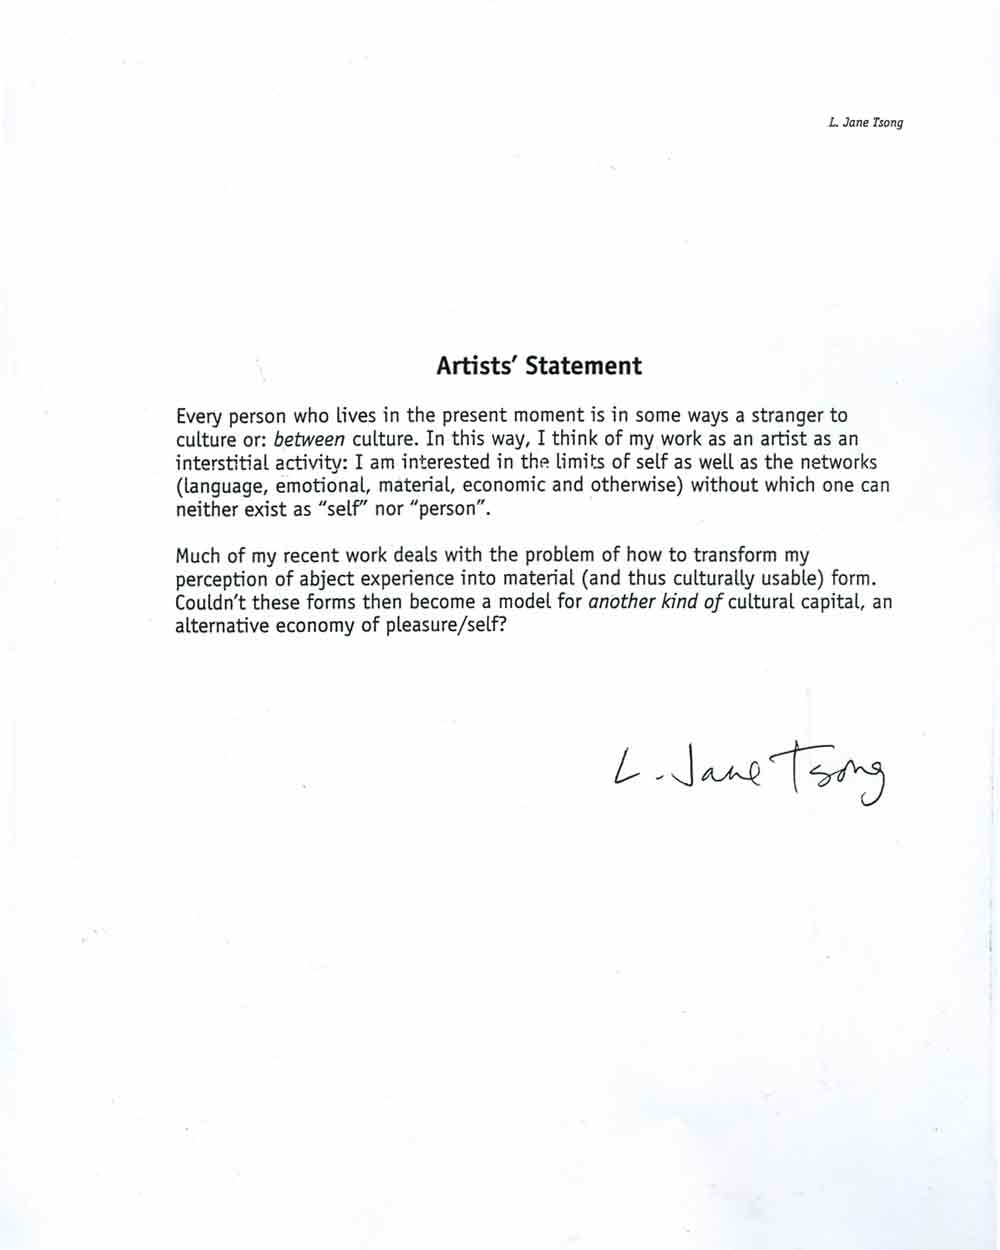 Lily Tsong's Artist Statement, signed as L. Jane Tsong